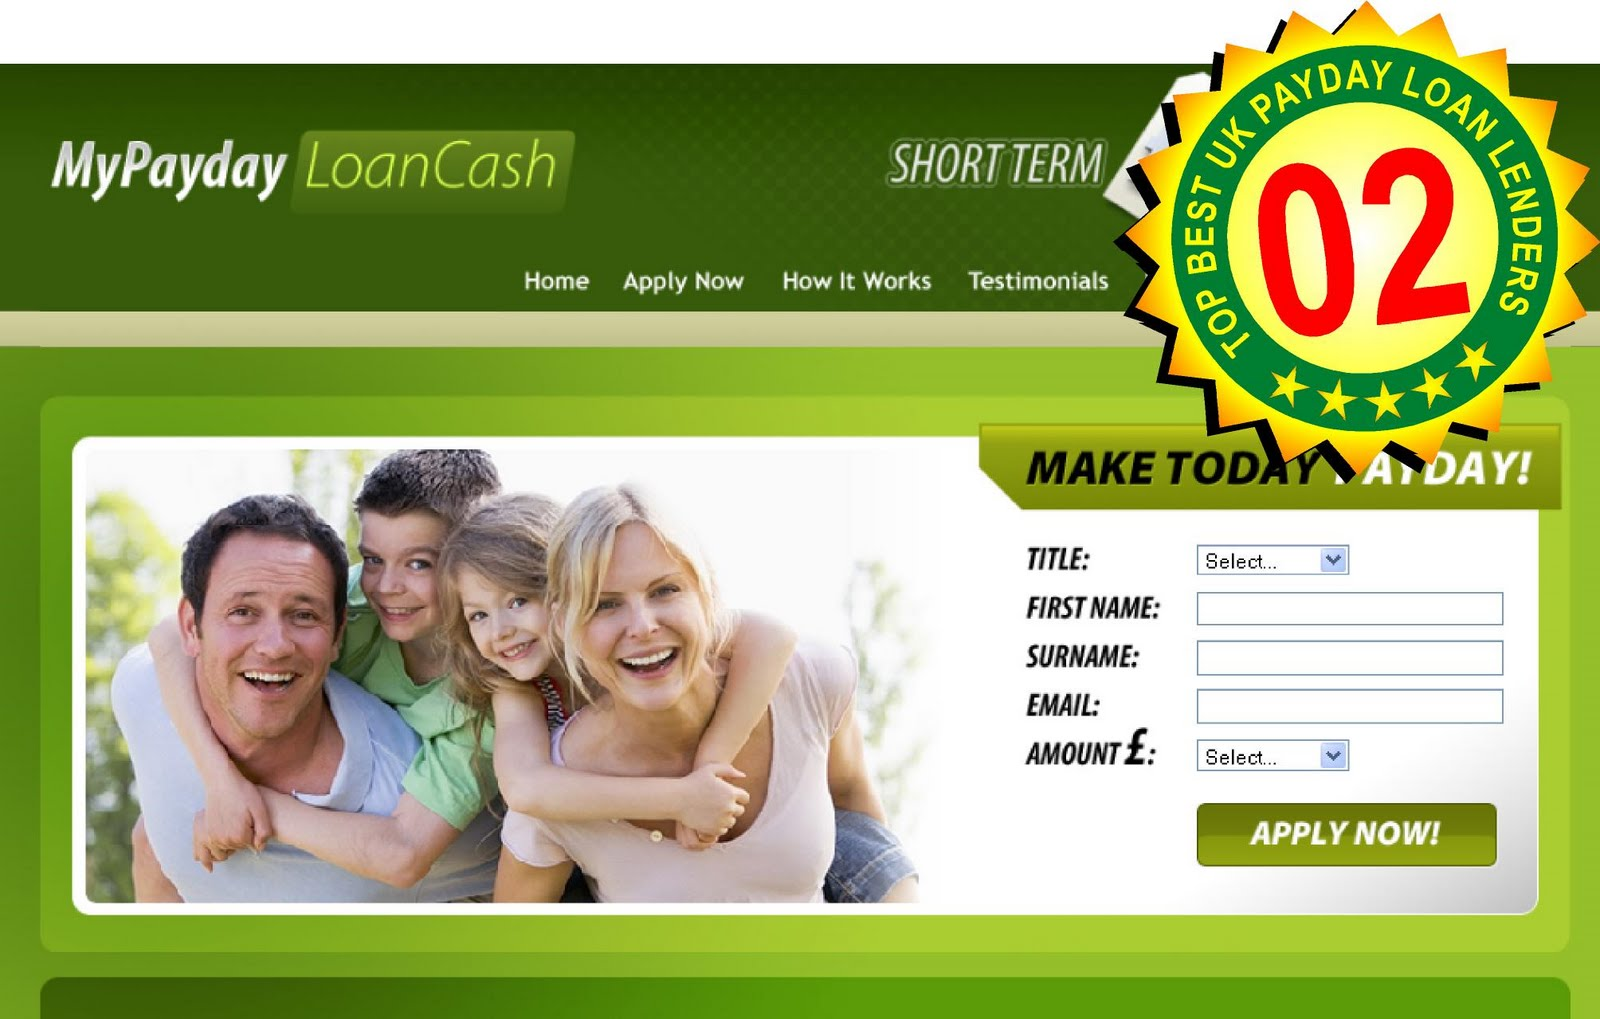 Bad credit loans florida image 8